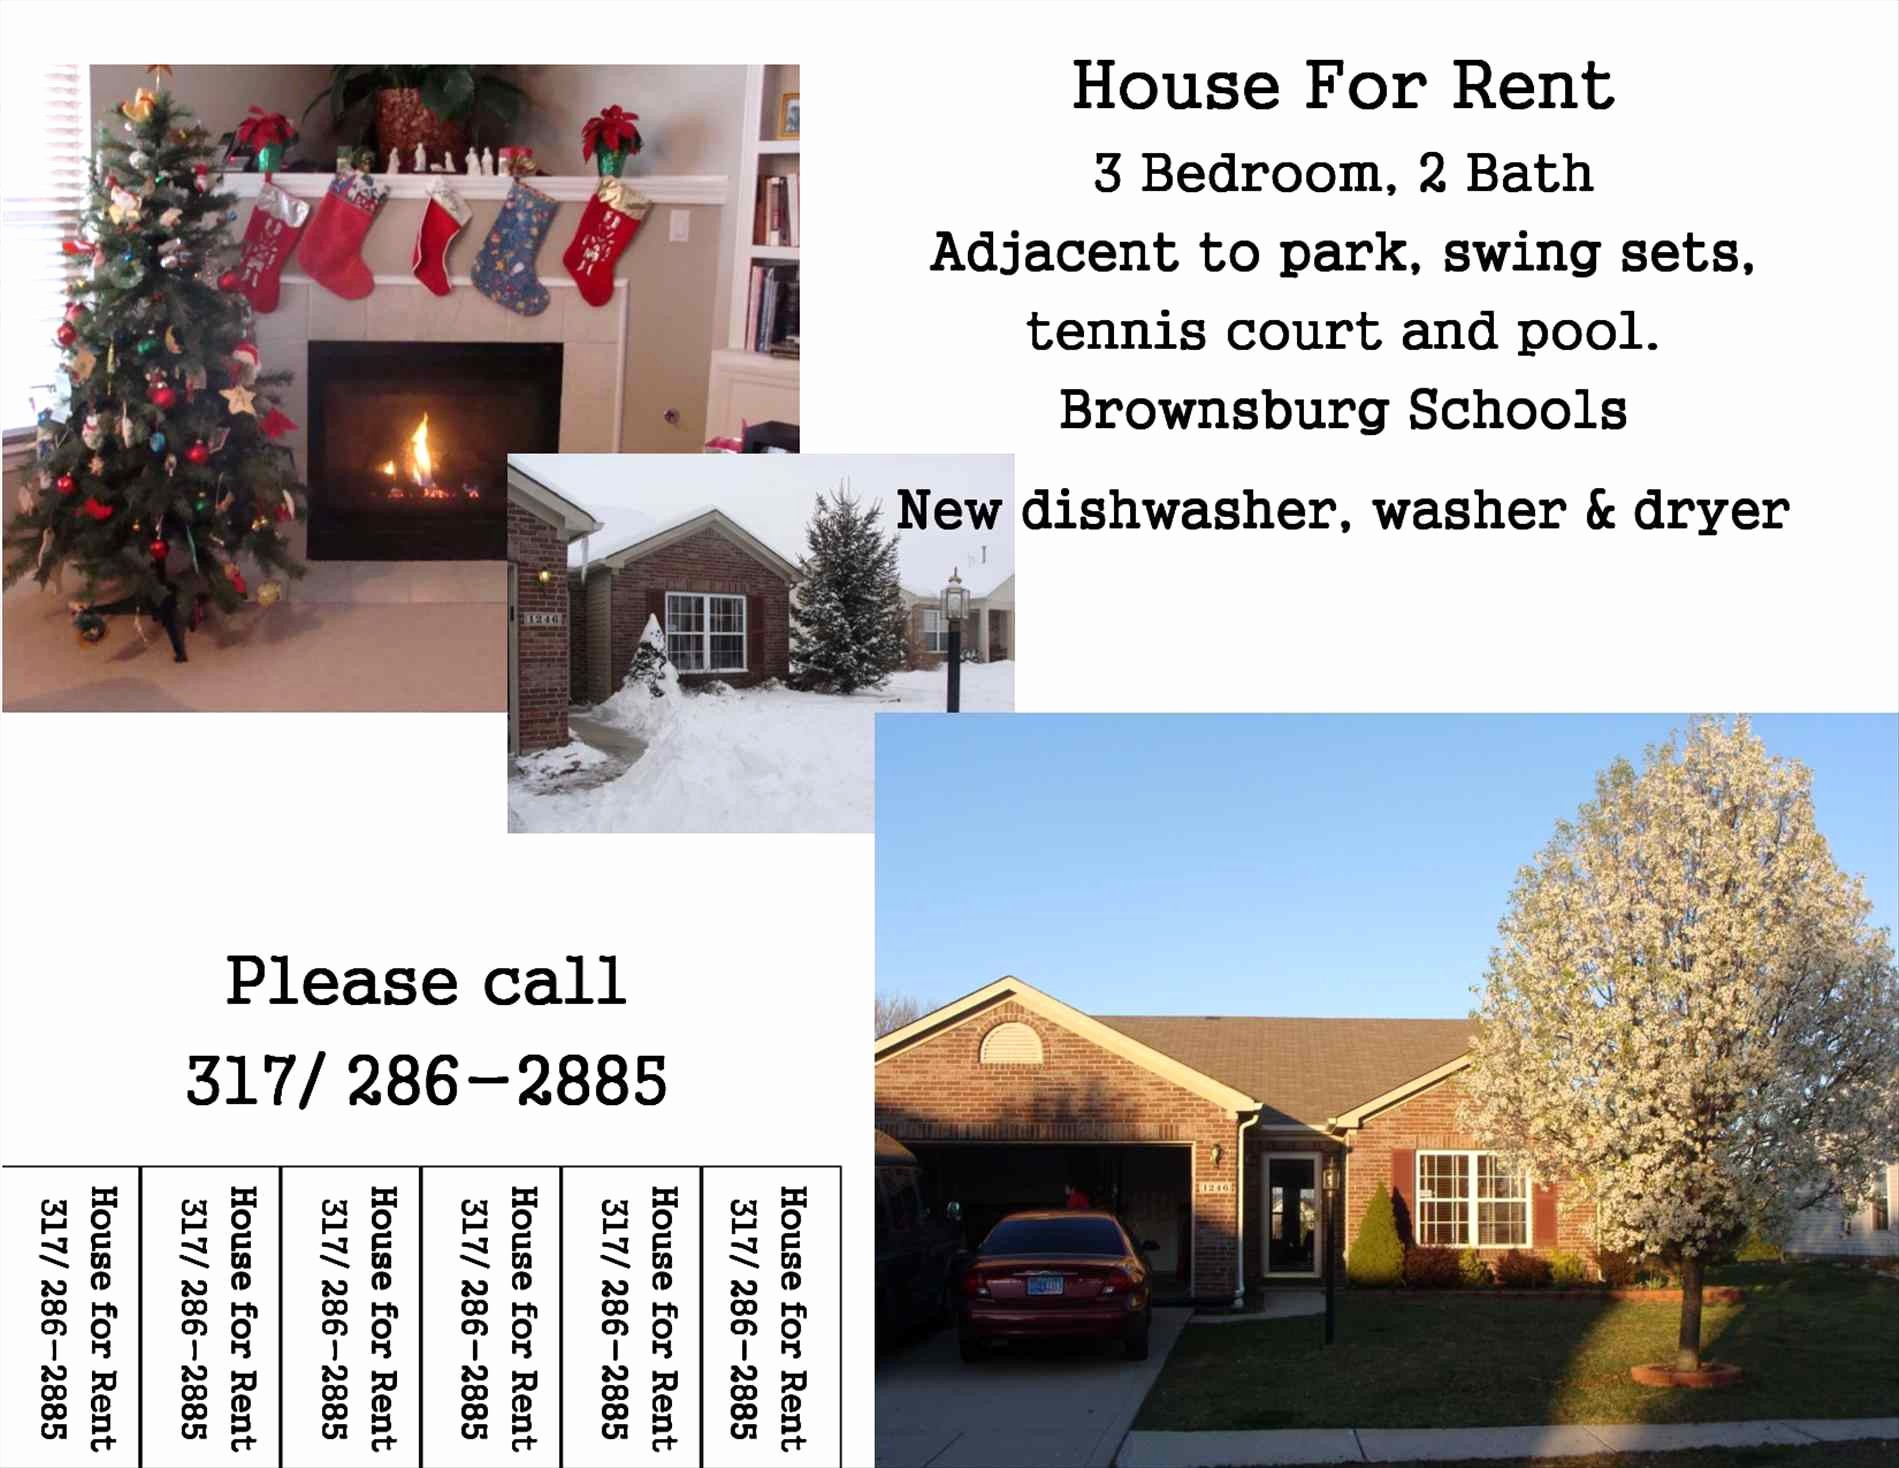 For Rent Flyer Template Free Awesome Apartments for Rent Flyer Home Design Decorating Geek and